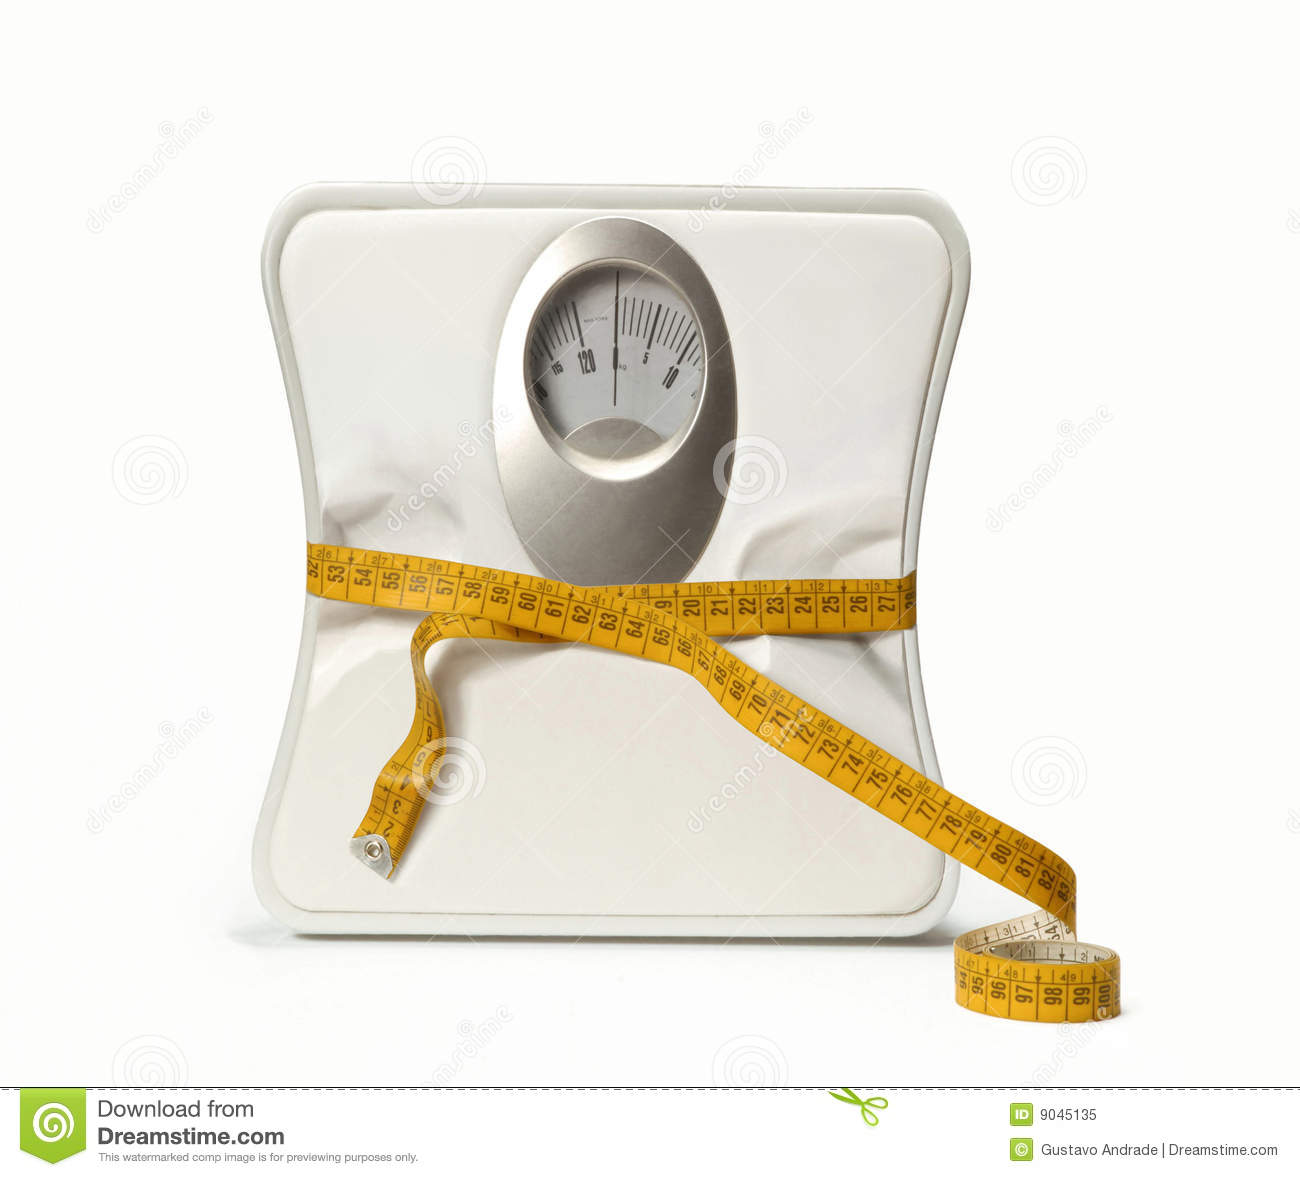 Dieting scale.